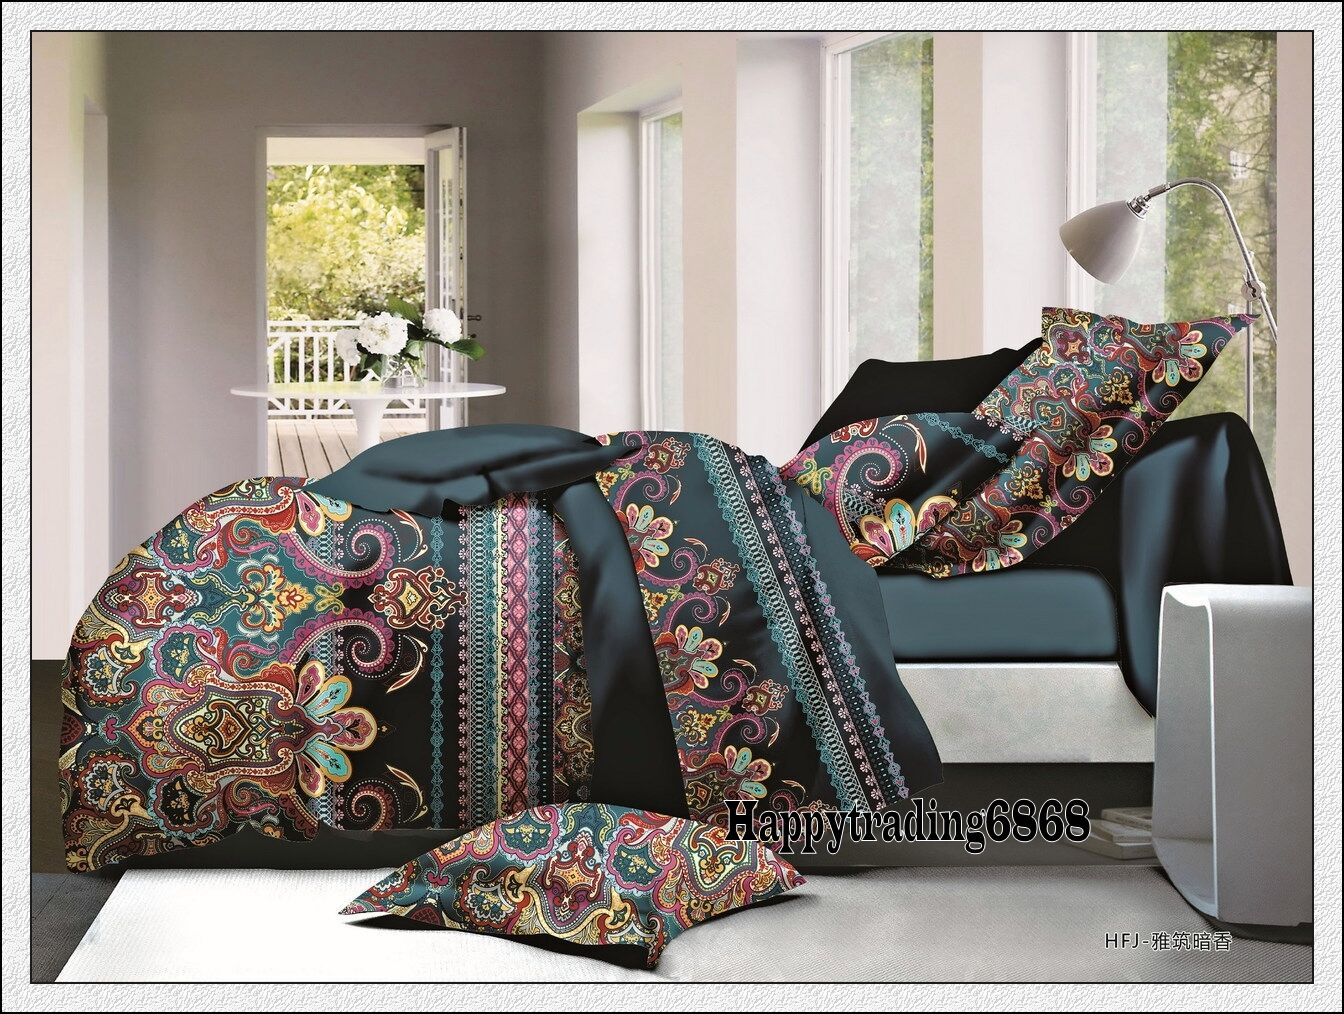 deep teal stylish print king queen quilt doona duvet cover 2 pillowcases set ebay. Black Bedroom Furniture Sets. Home Design Ideas